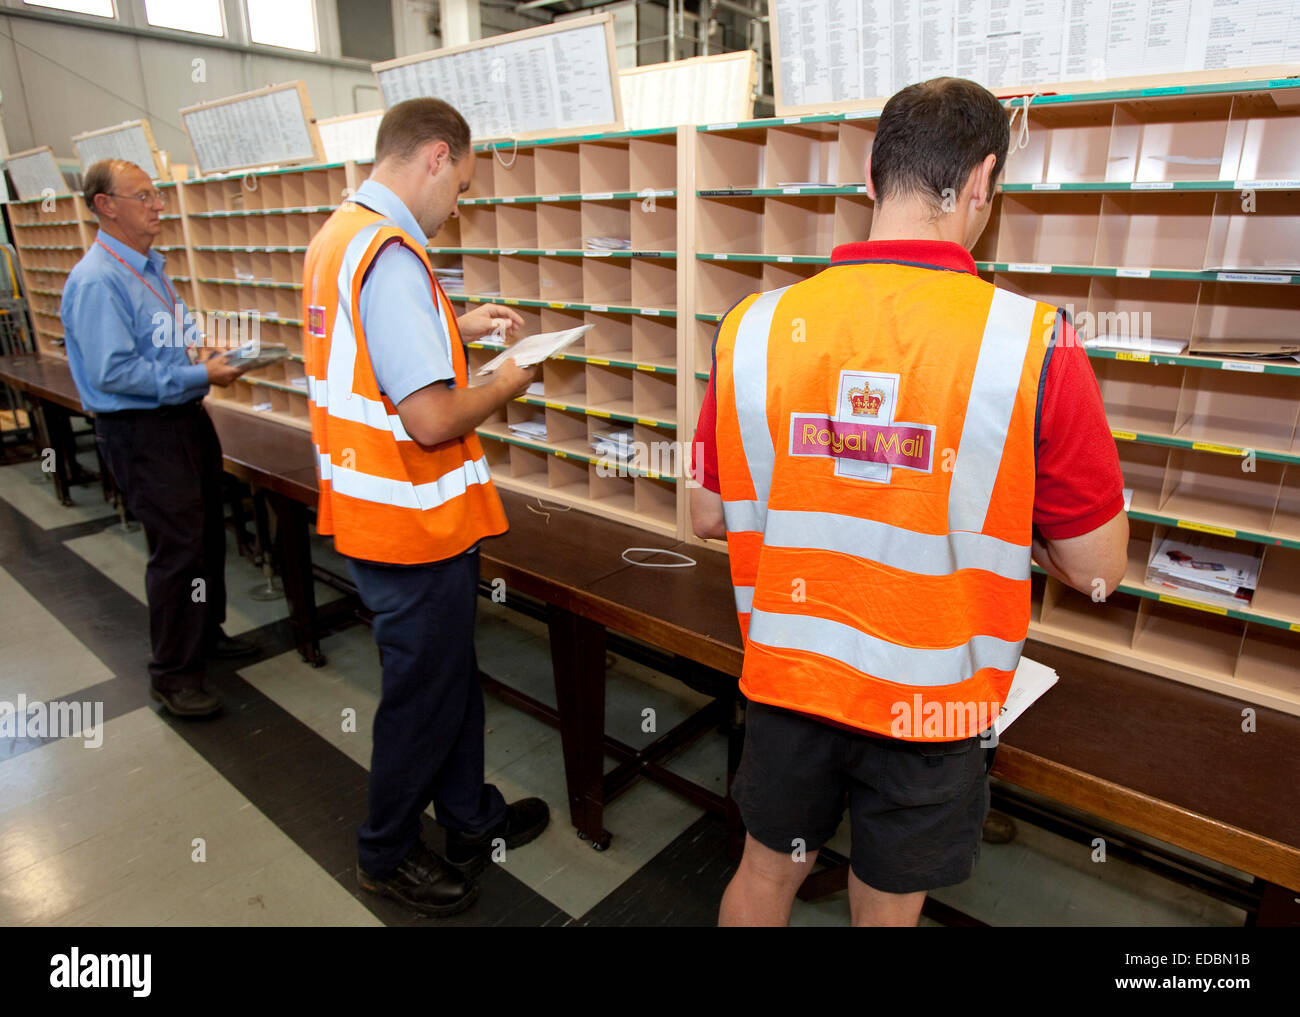 Postal workers sort letters at a Royal Mail delivery office, Royston. - Stock Image